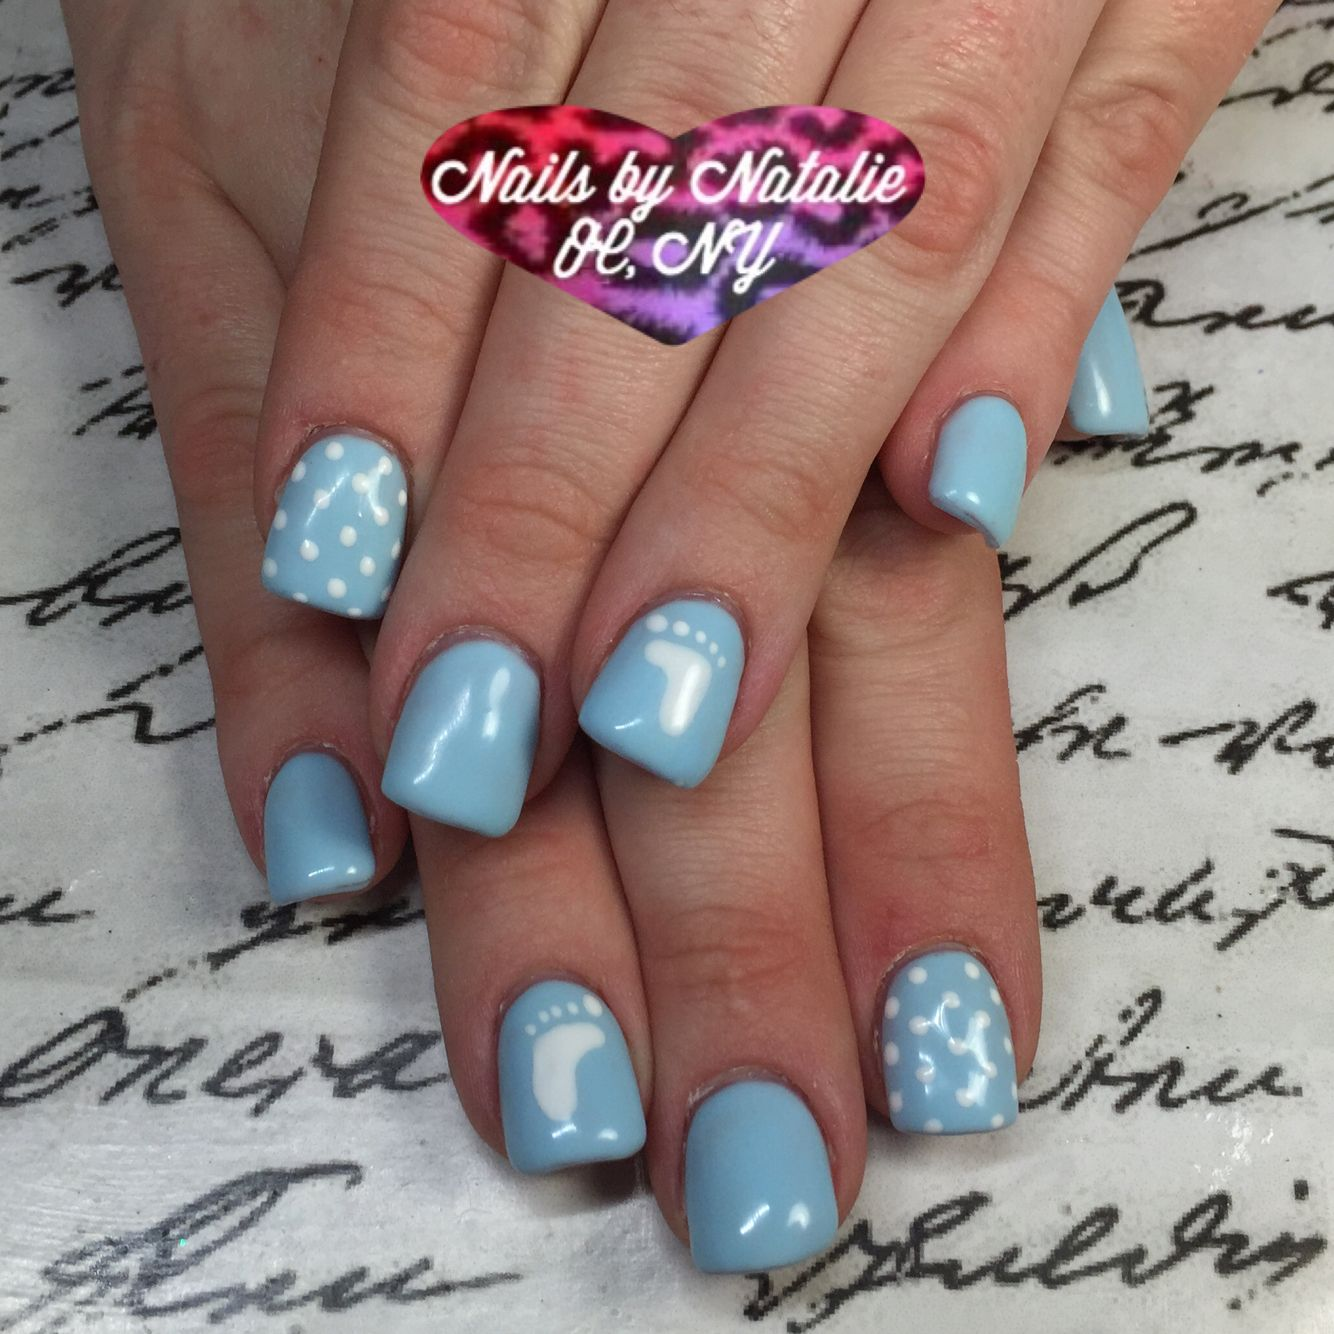 Gel Nail Designs Baby Shower Themed Using Gelish Cnd Brisa Overlay